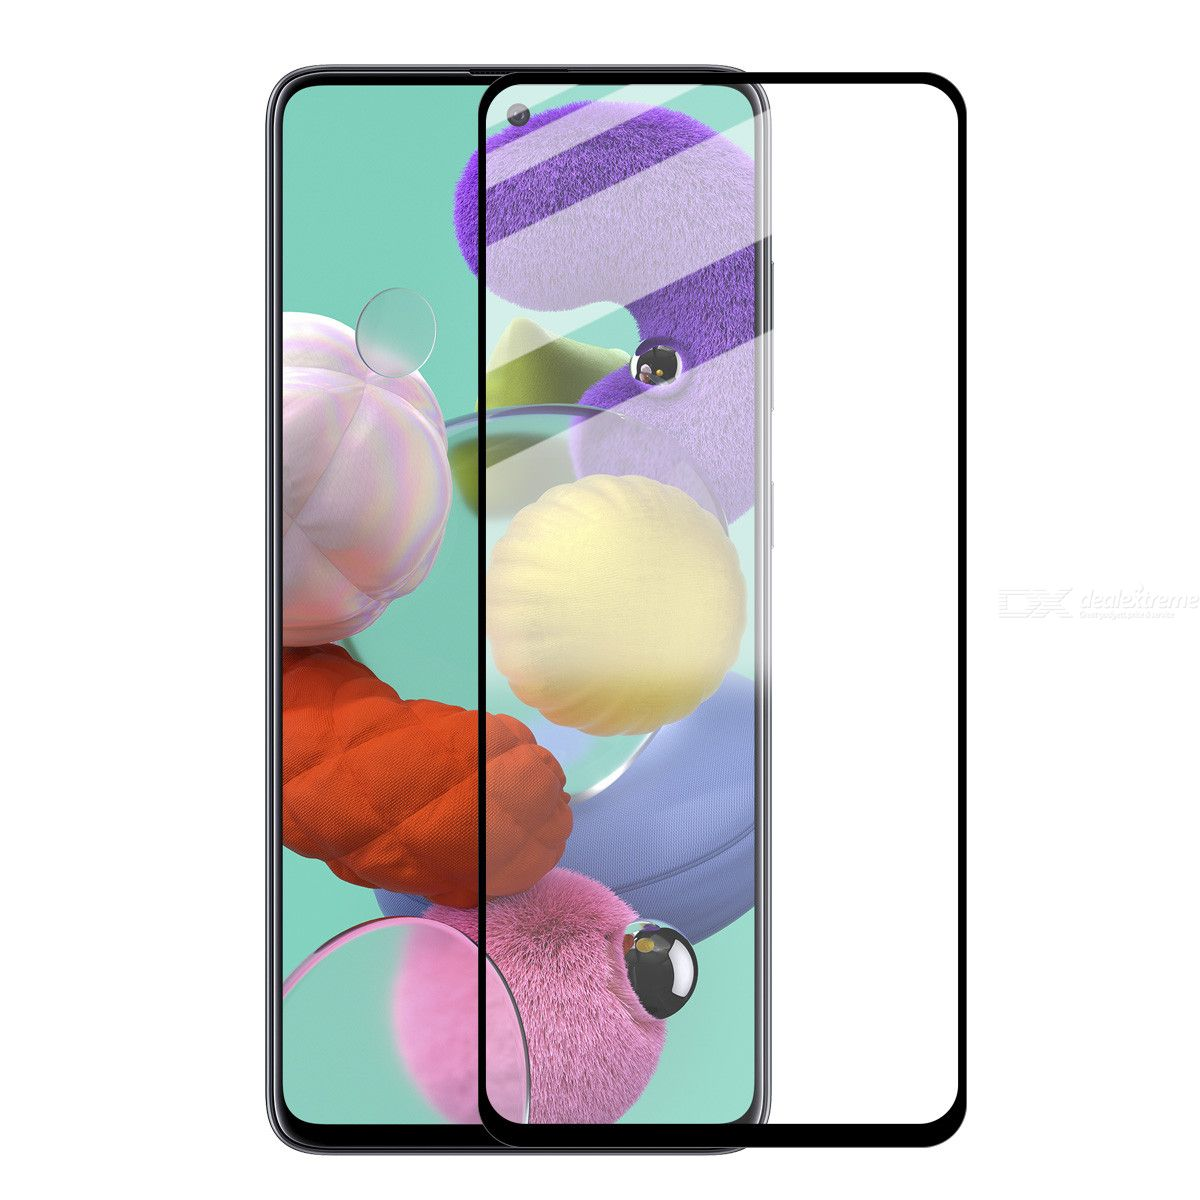 ENKAY Hat-Prince Full Glue 0.26mm 9H 2.5D Tempered Glass Full Coverage Film for Samsung Galaxy A51